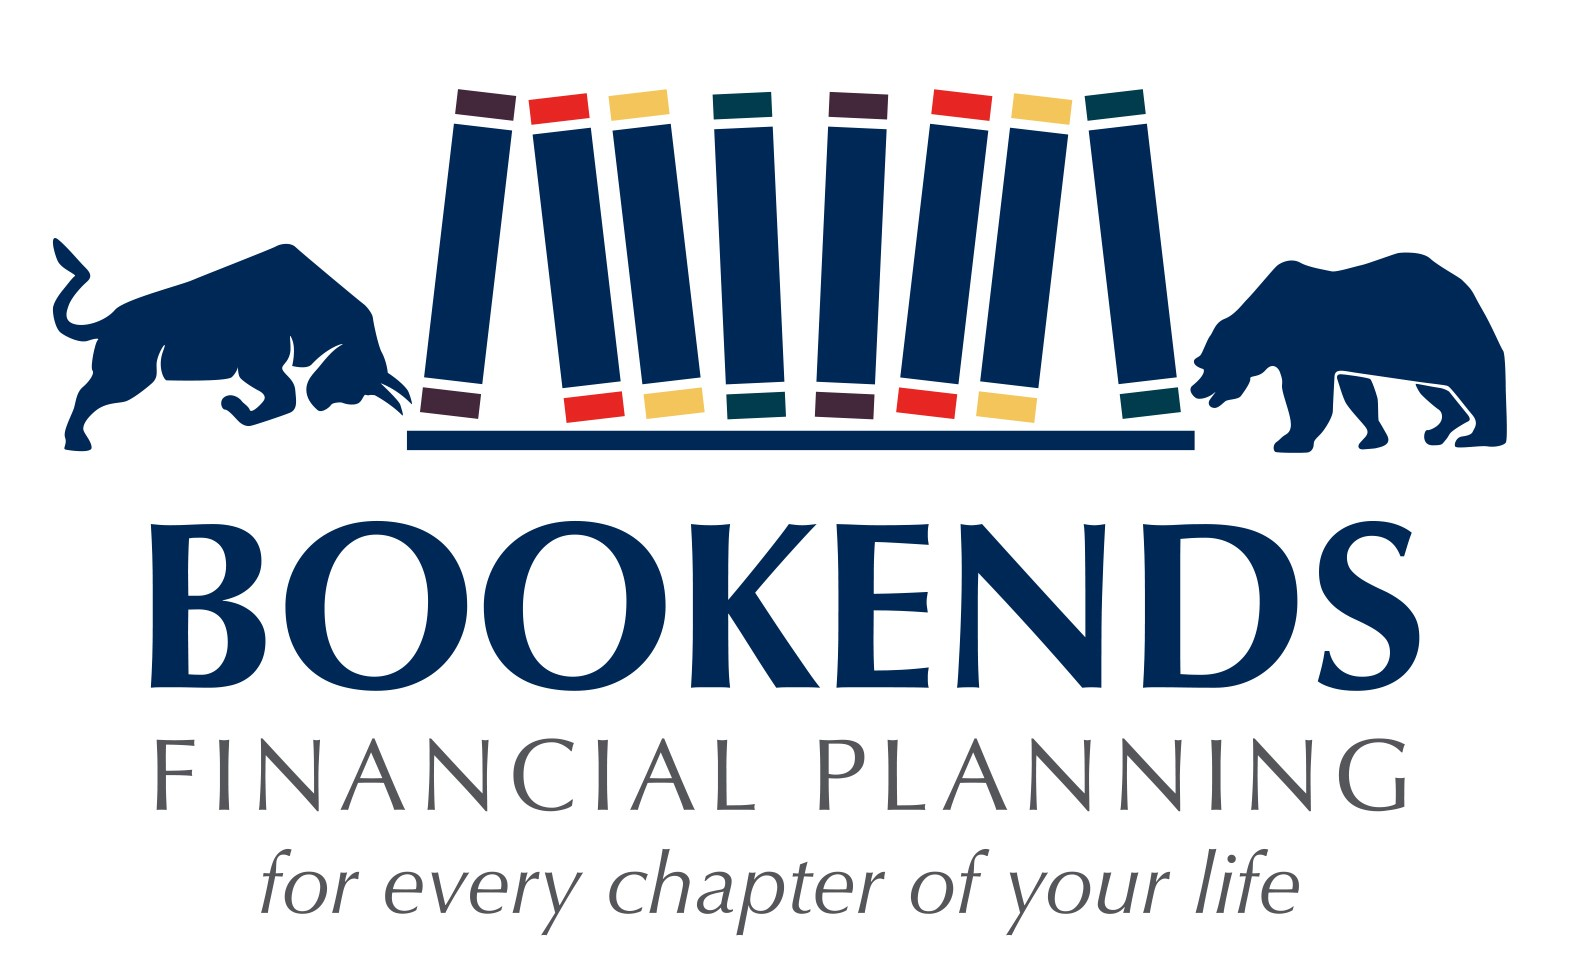 Bookends Financial